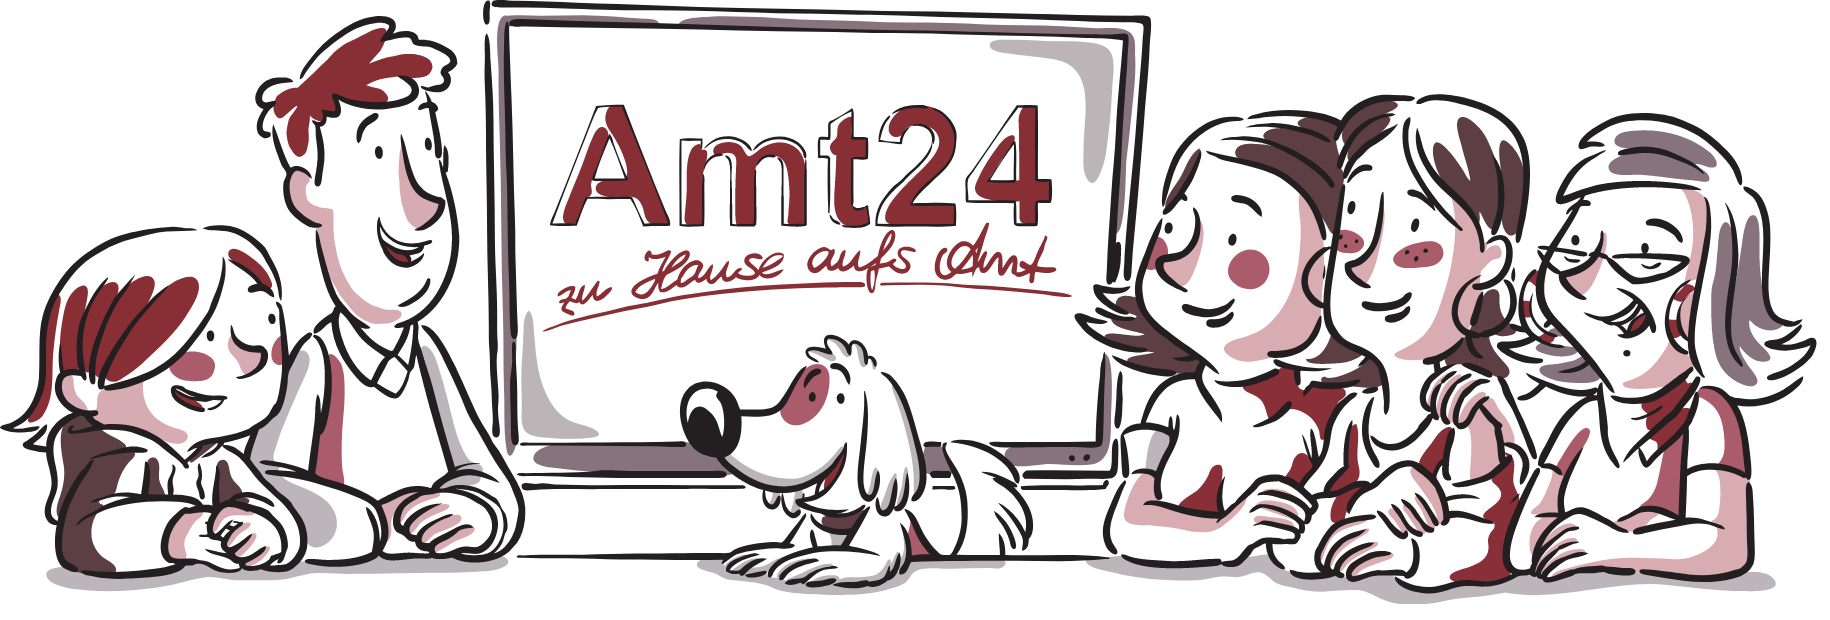 Amt24 - zu Hause aufs Amt